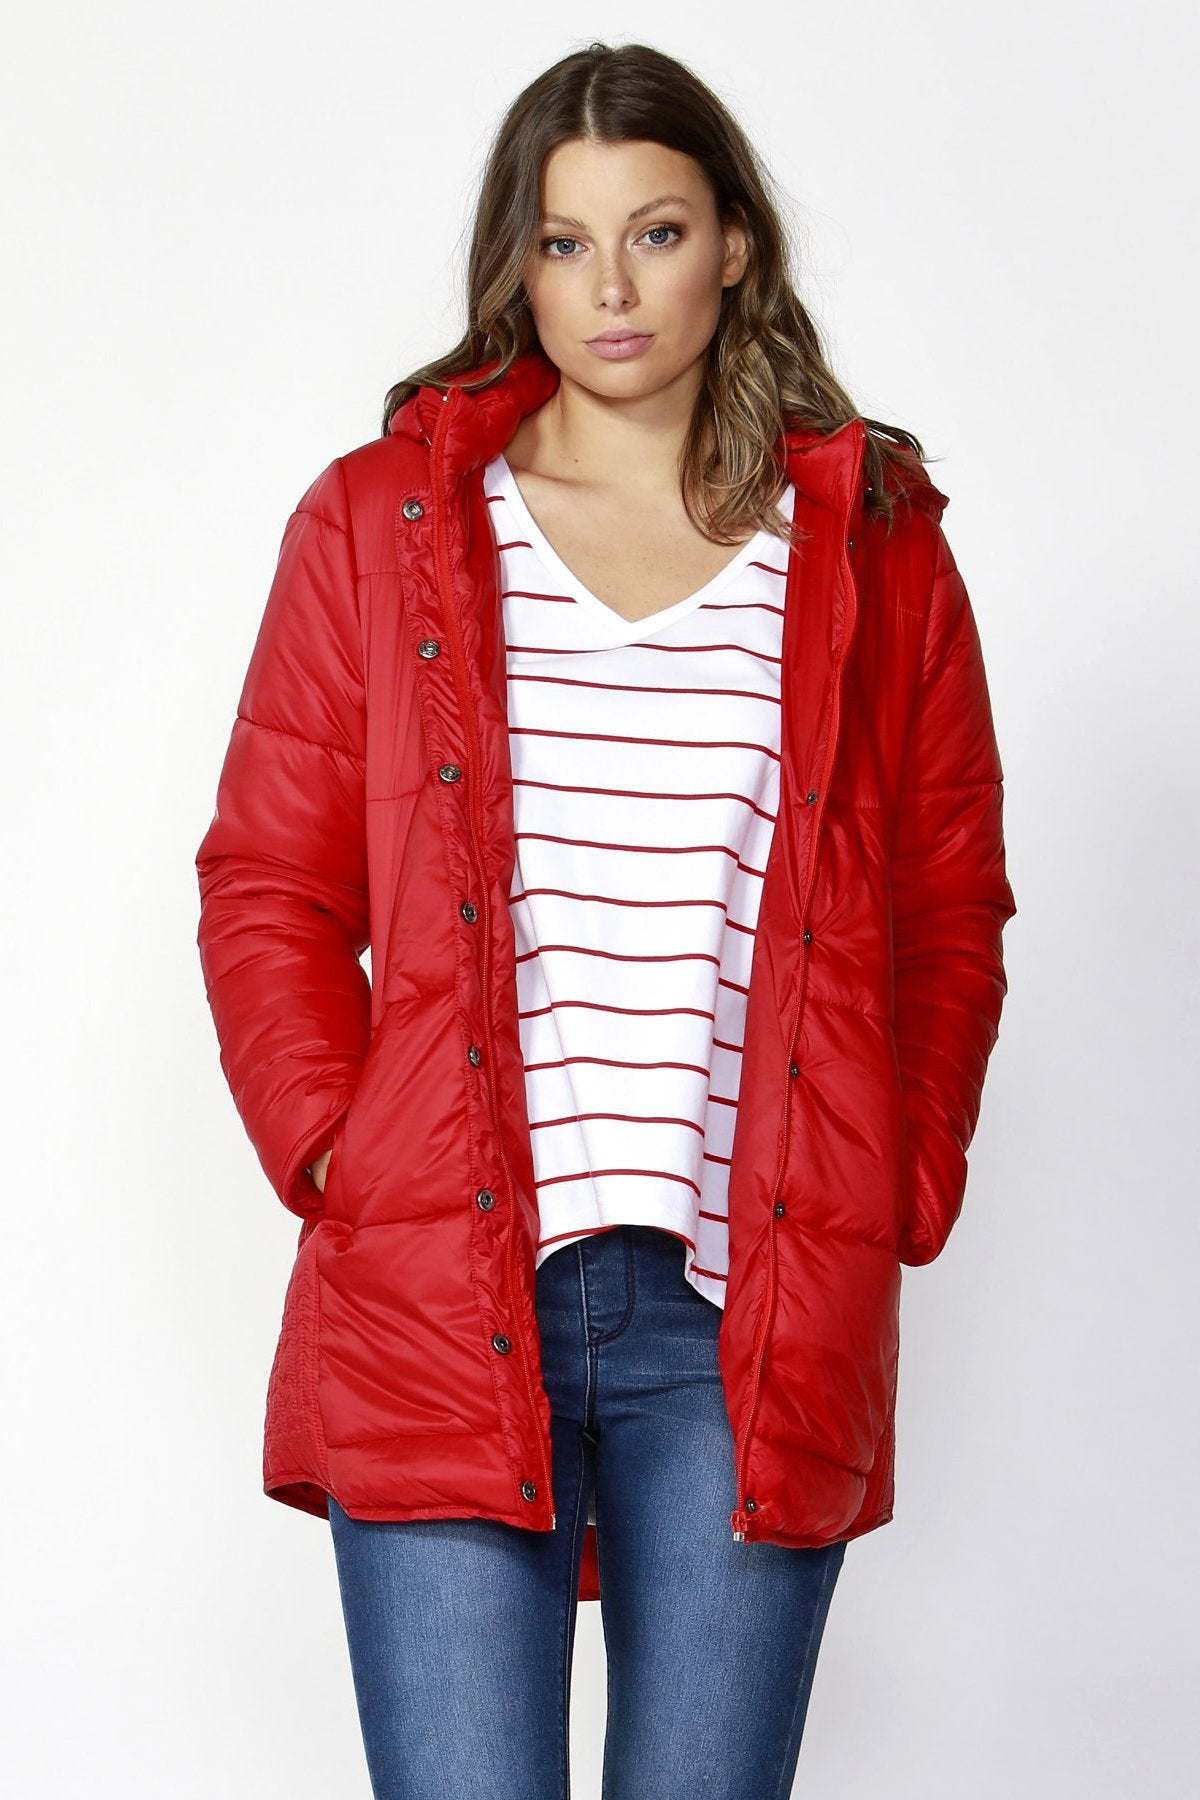 Betty Basics Ashton Long Puffer Jacket in Lava Red